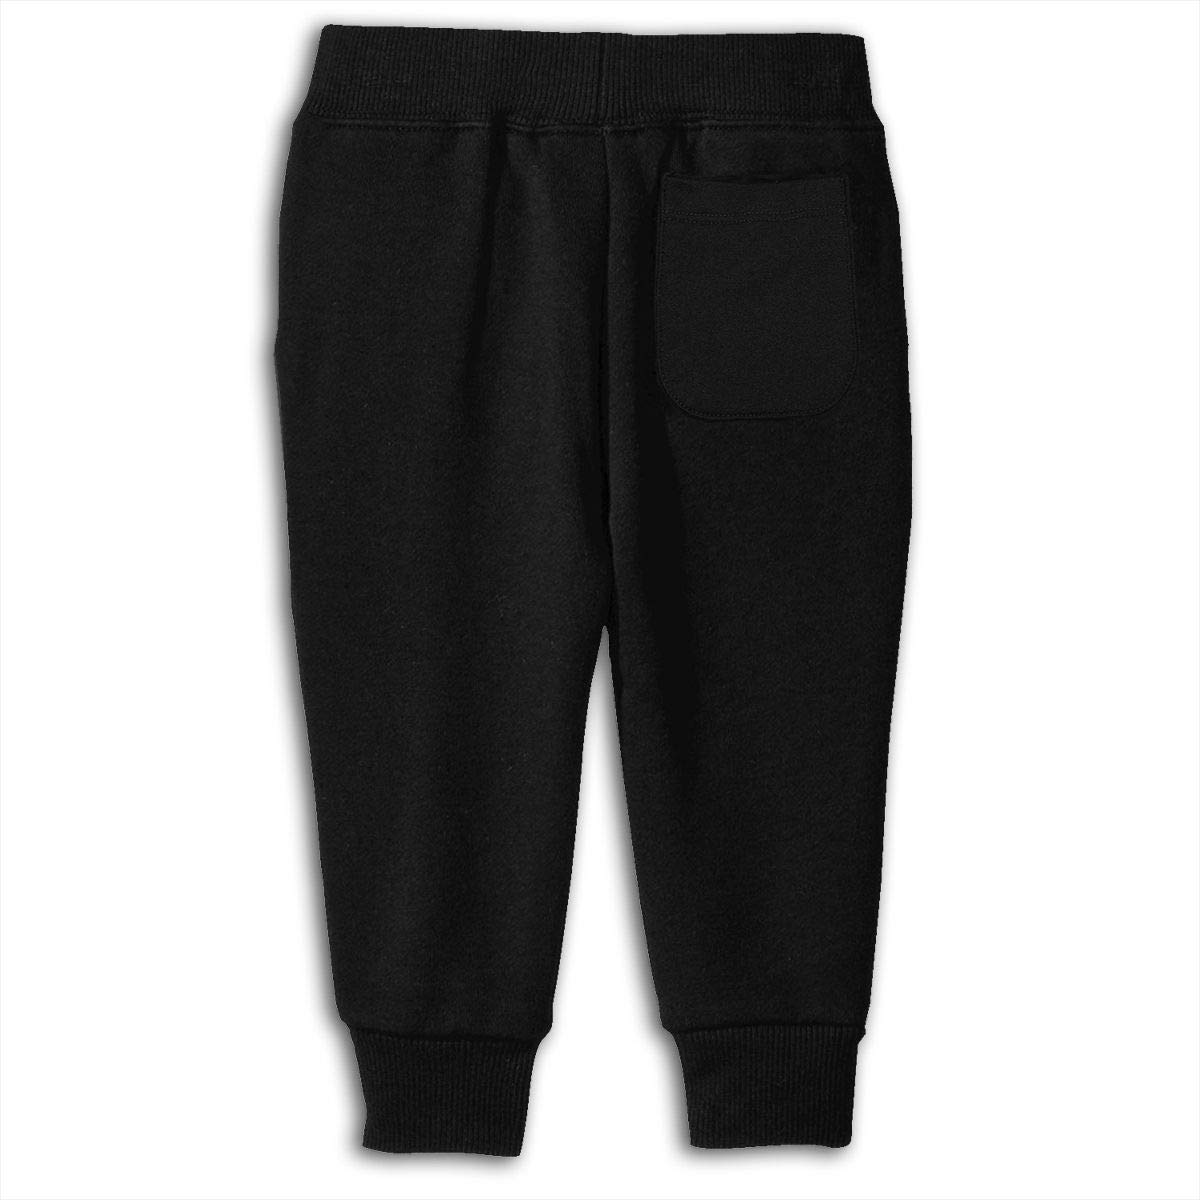 3DmaxTees Dab Dan TDM Boys Autumn Winter Long Trousers Daily Long Pants